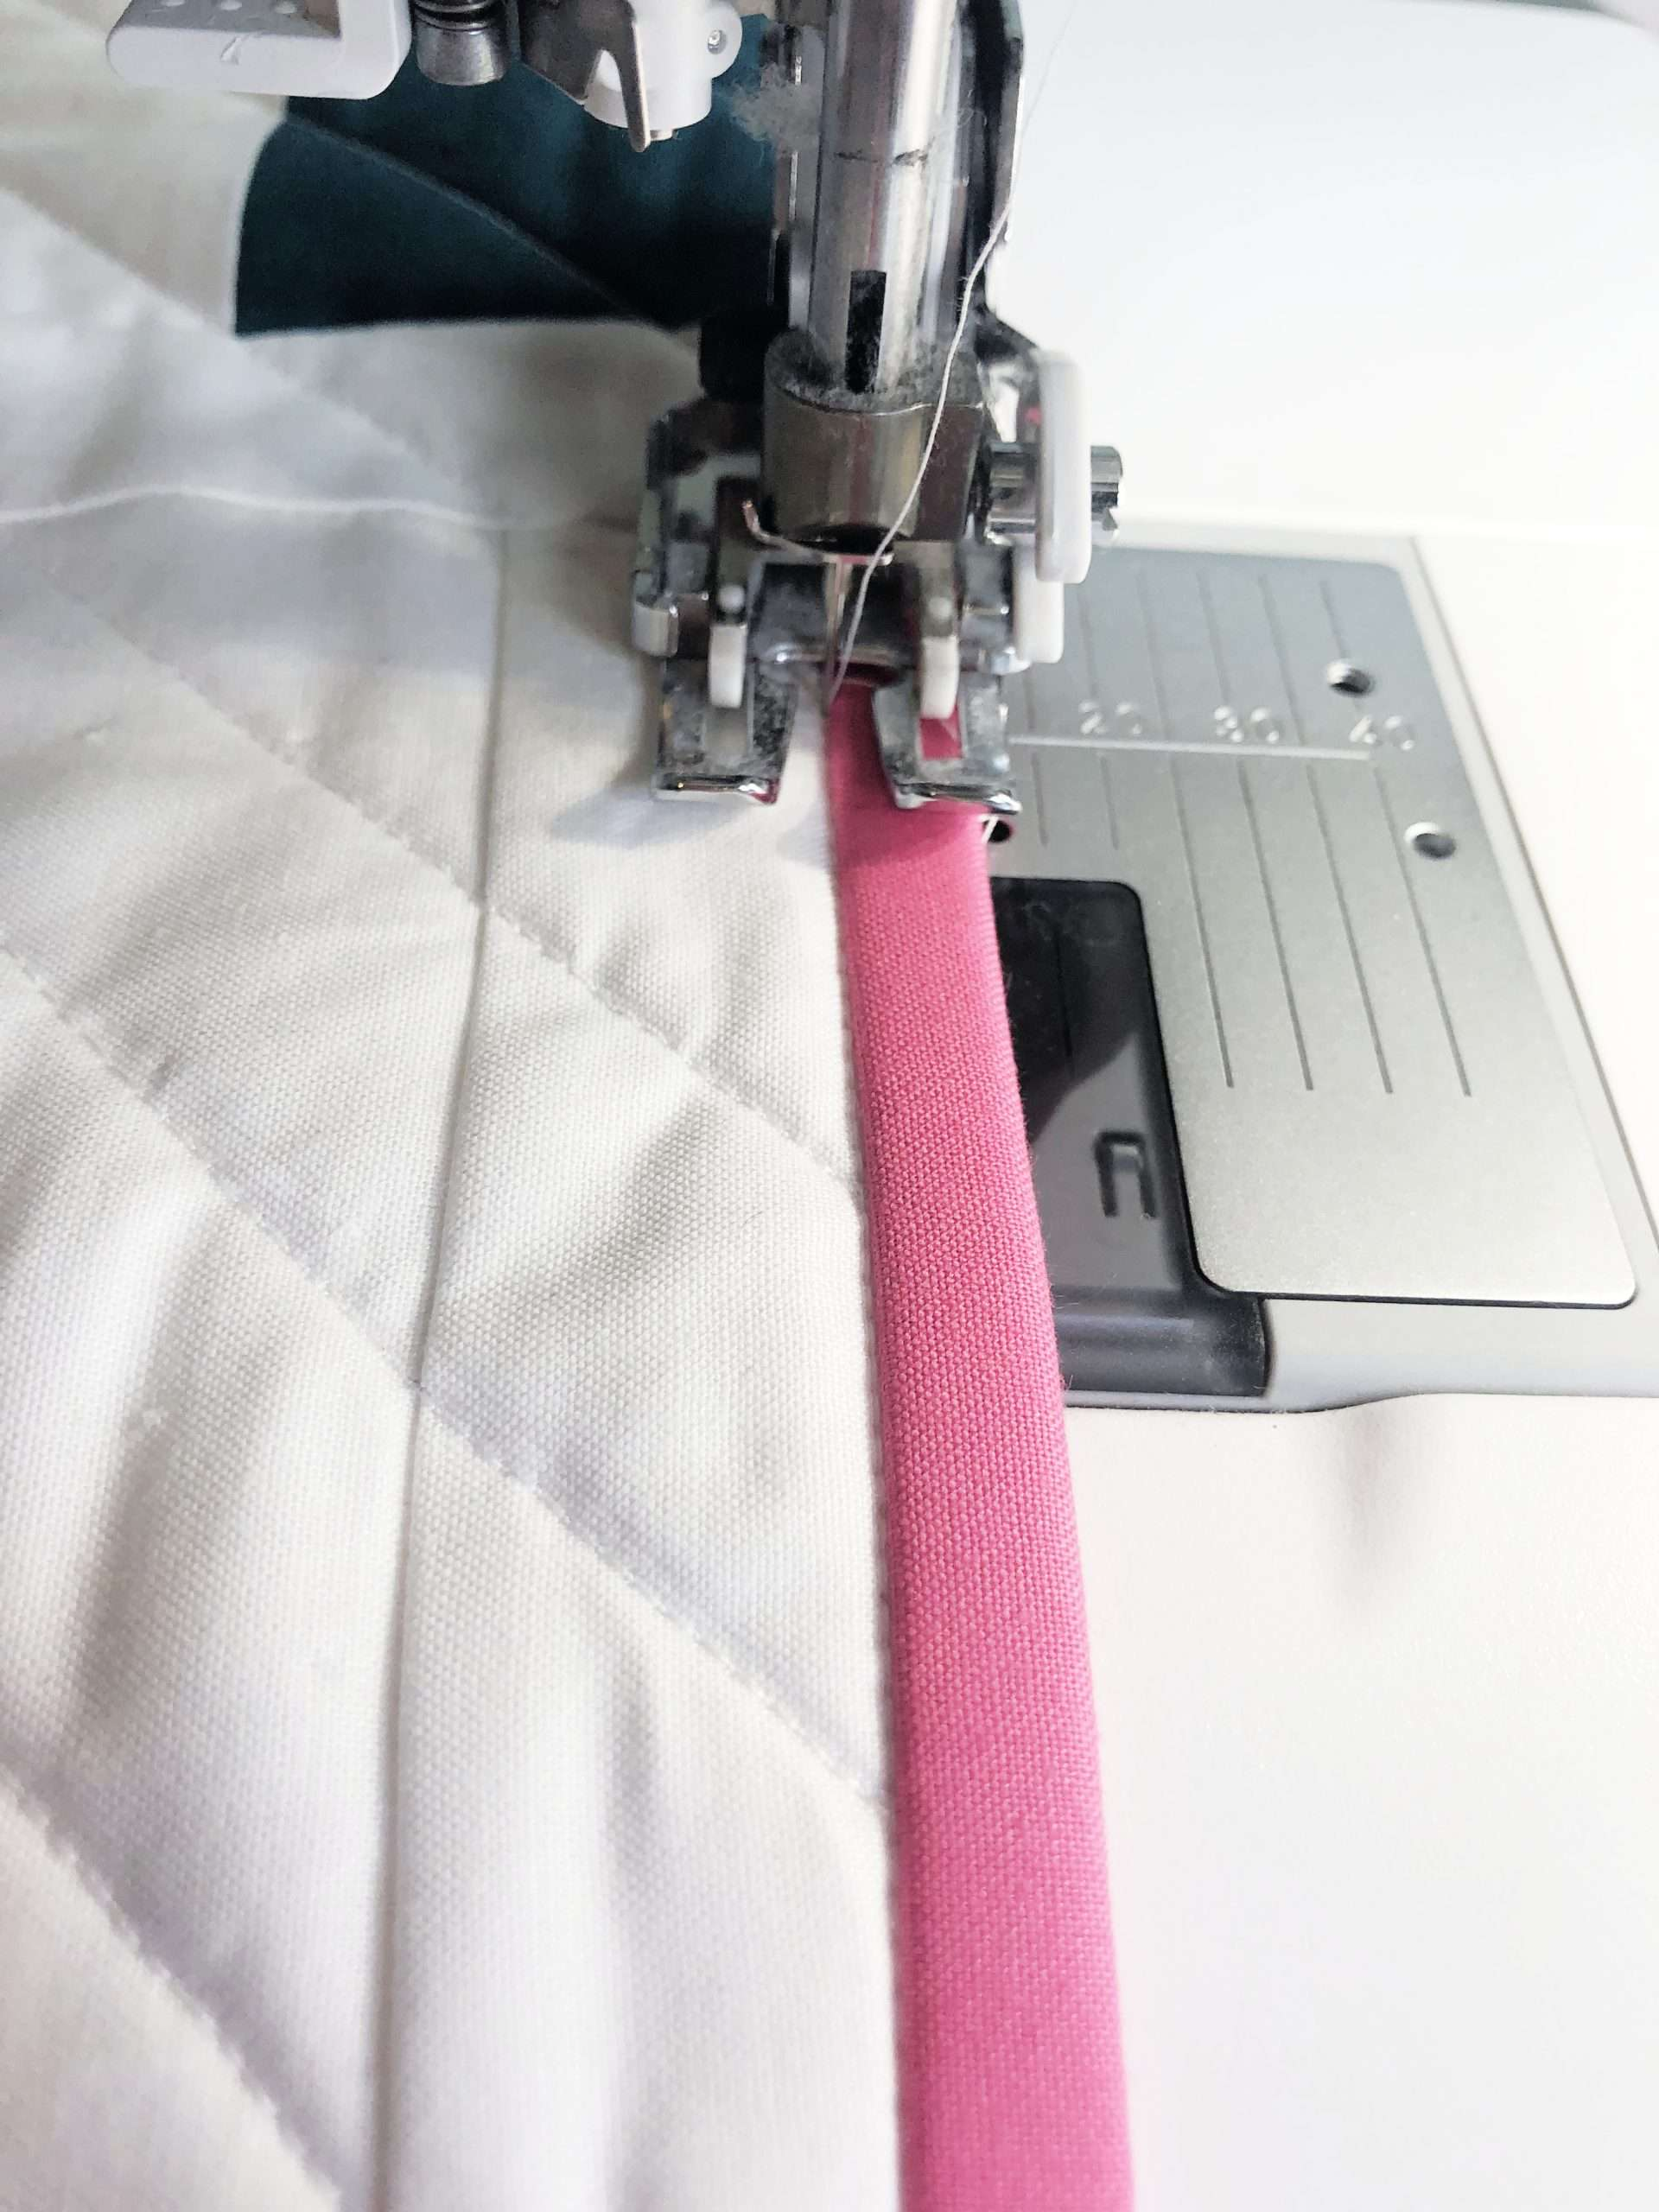 Quilt Binding by machine stitch in ditch